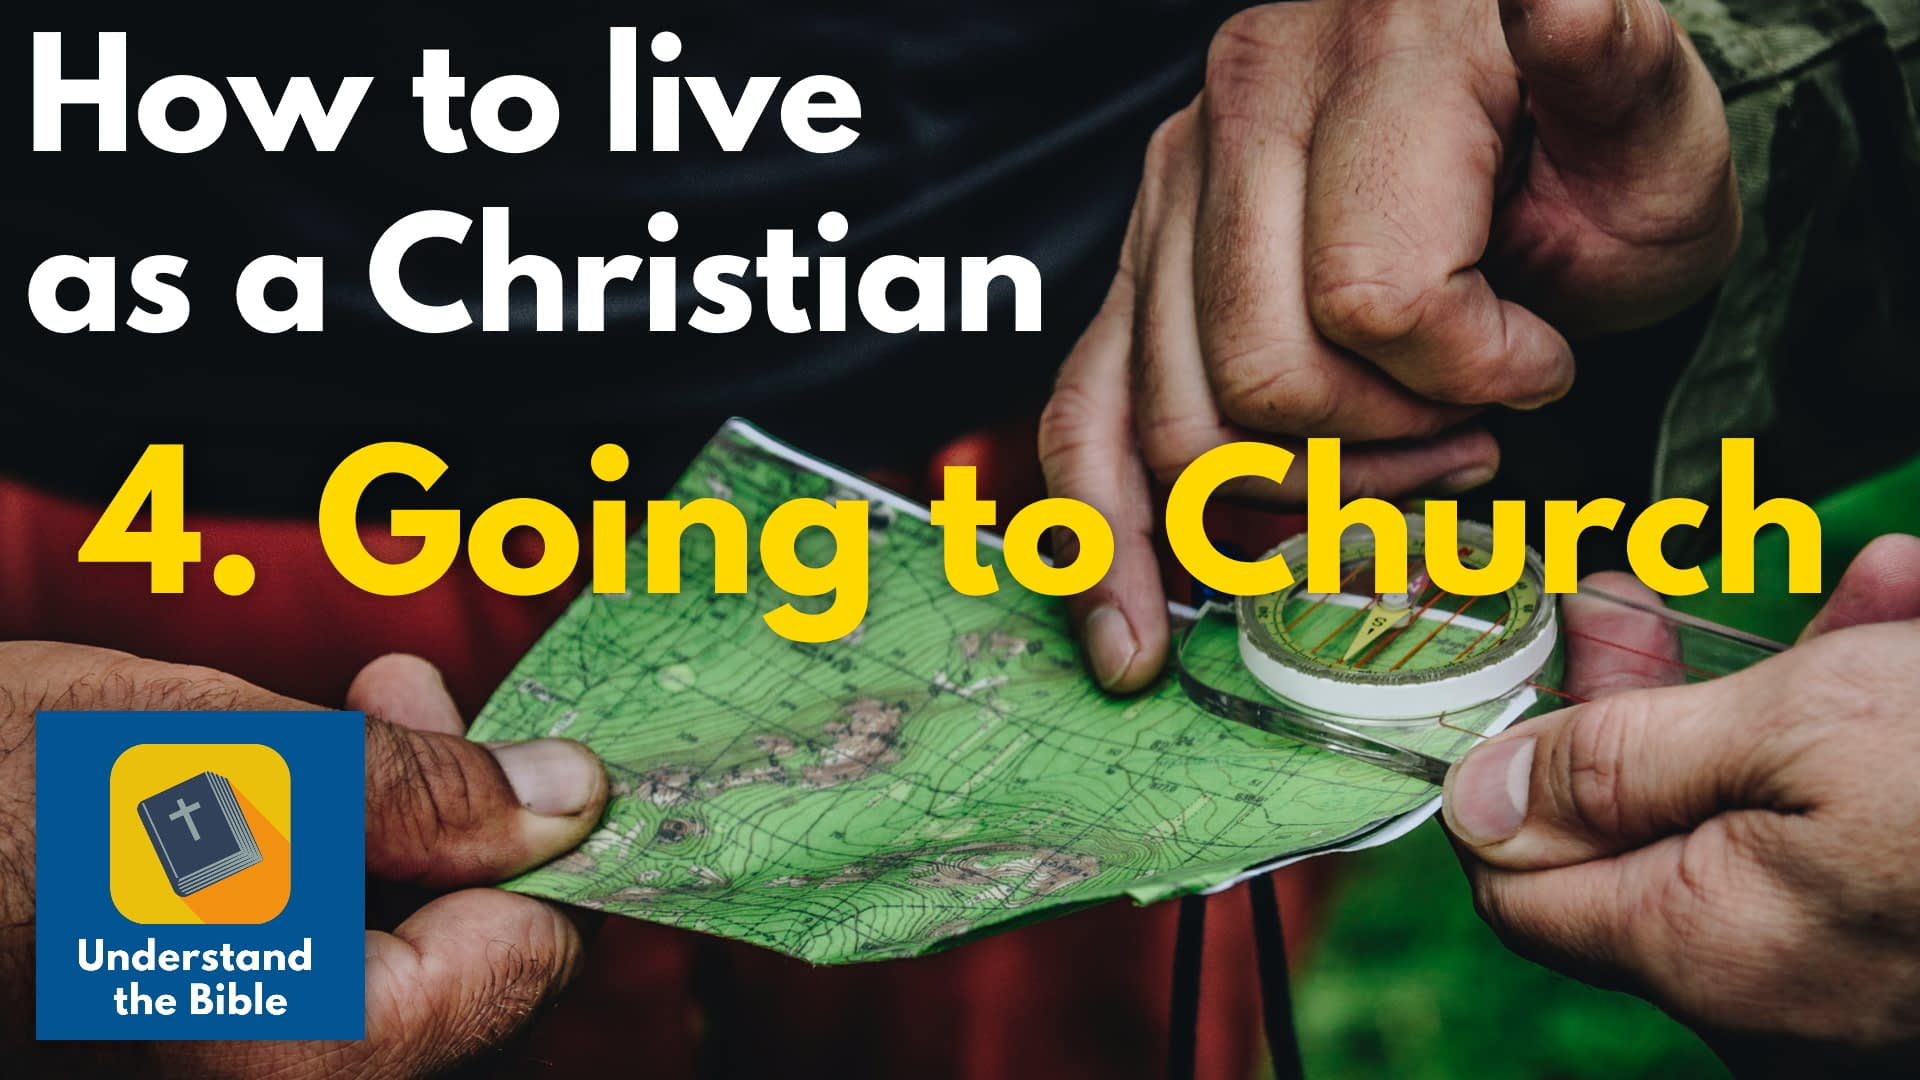 Why bother going to church?